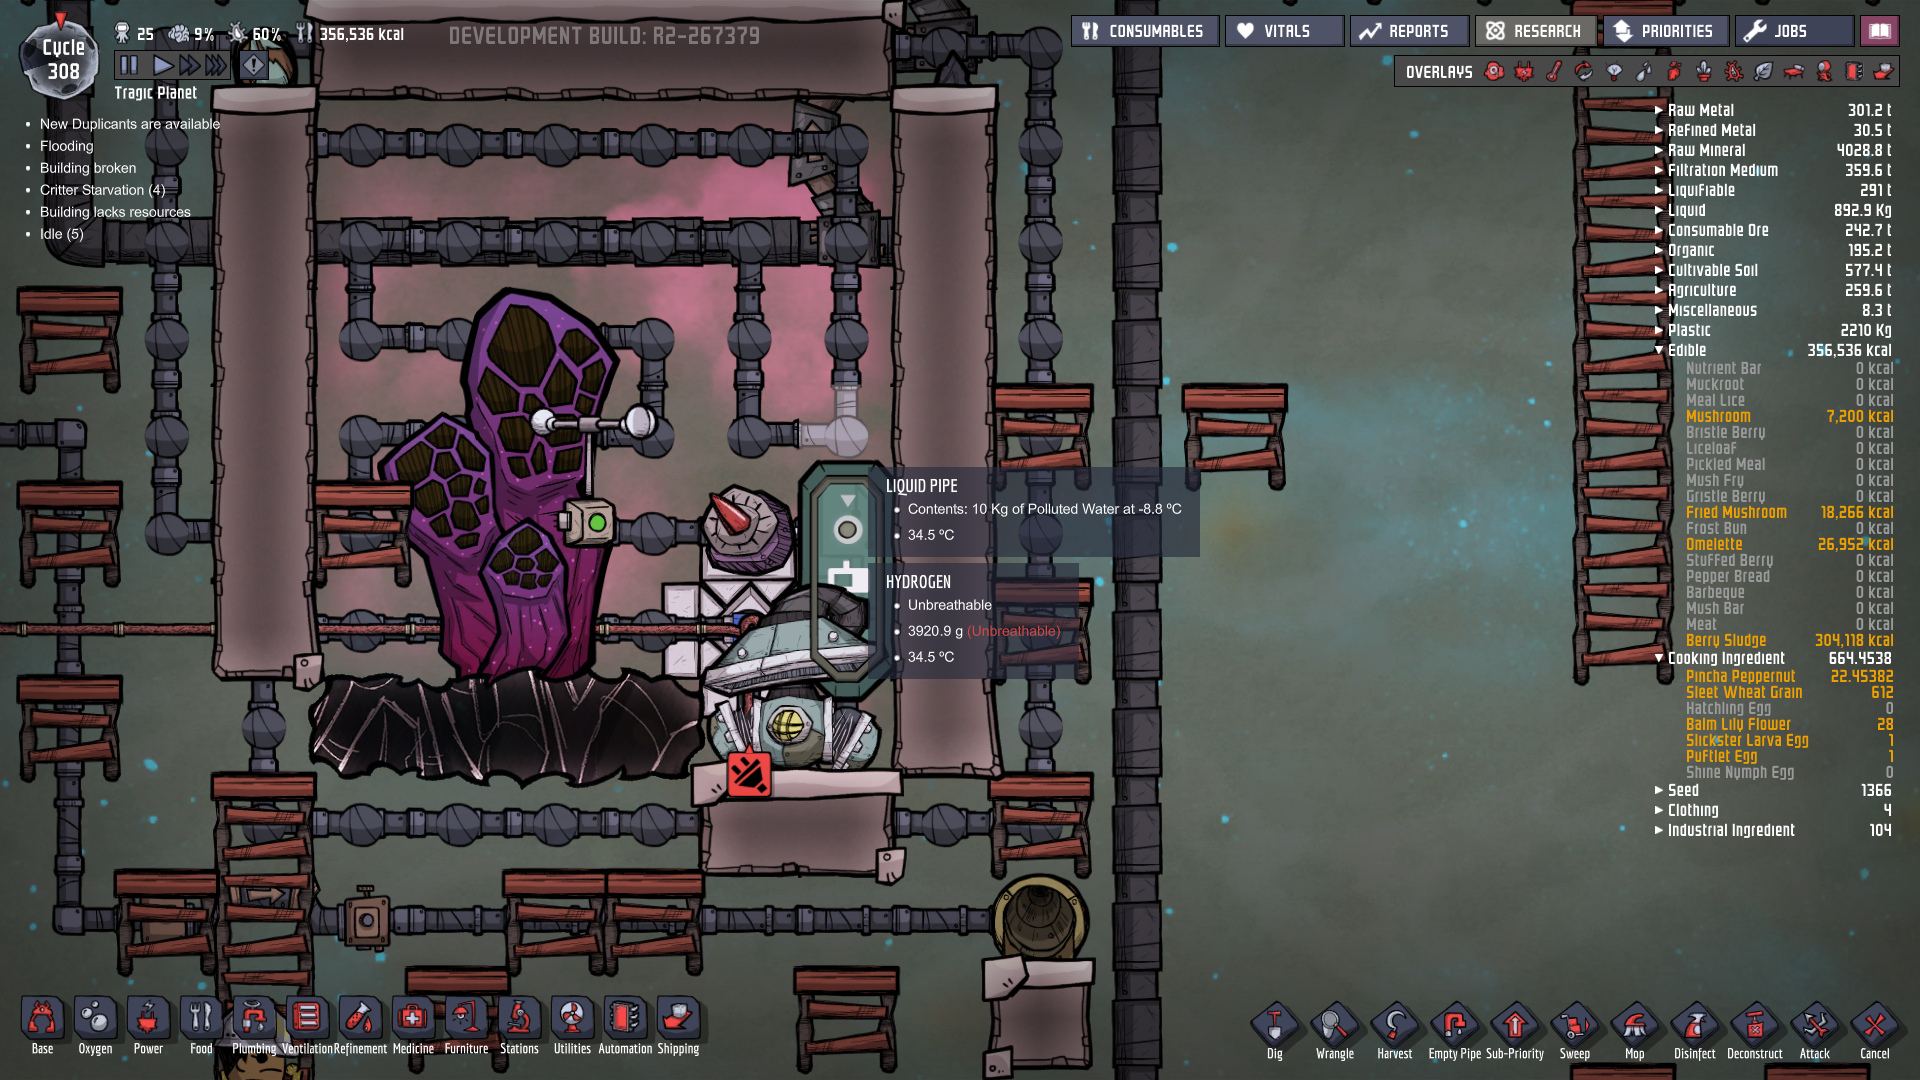 Geyser Tips - [Oxygen Not Included] - General Discussion